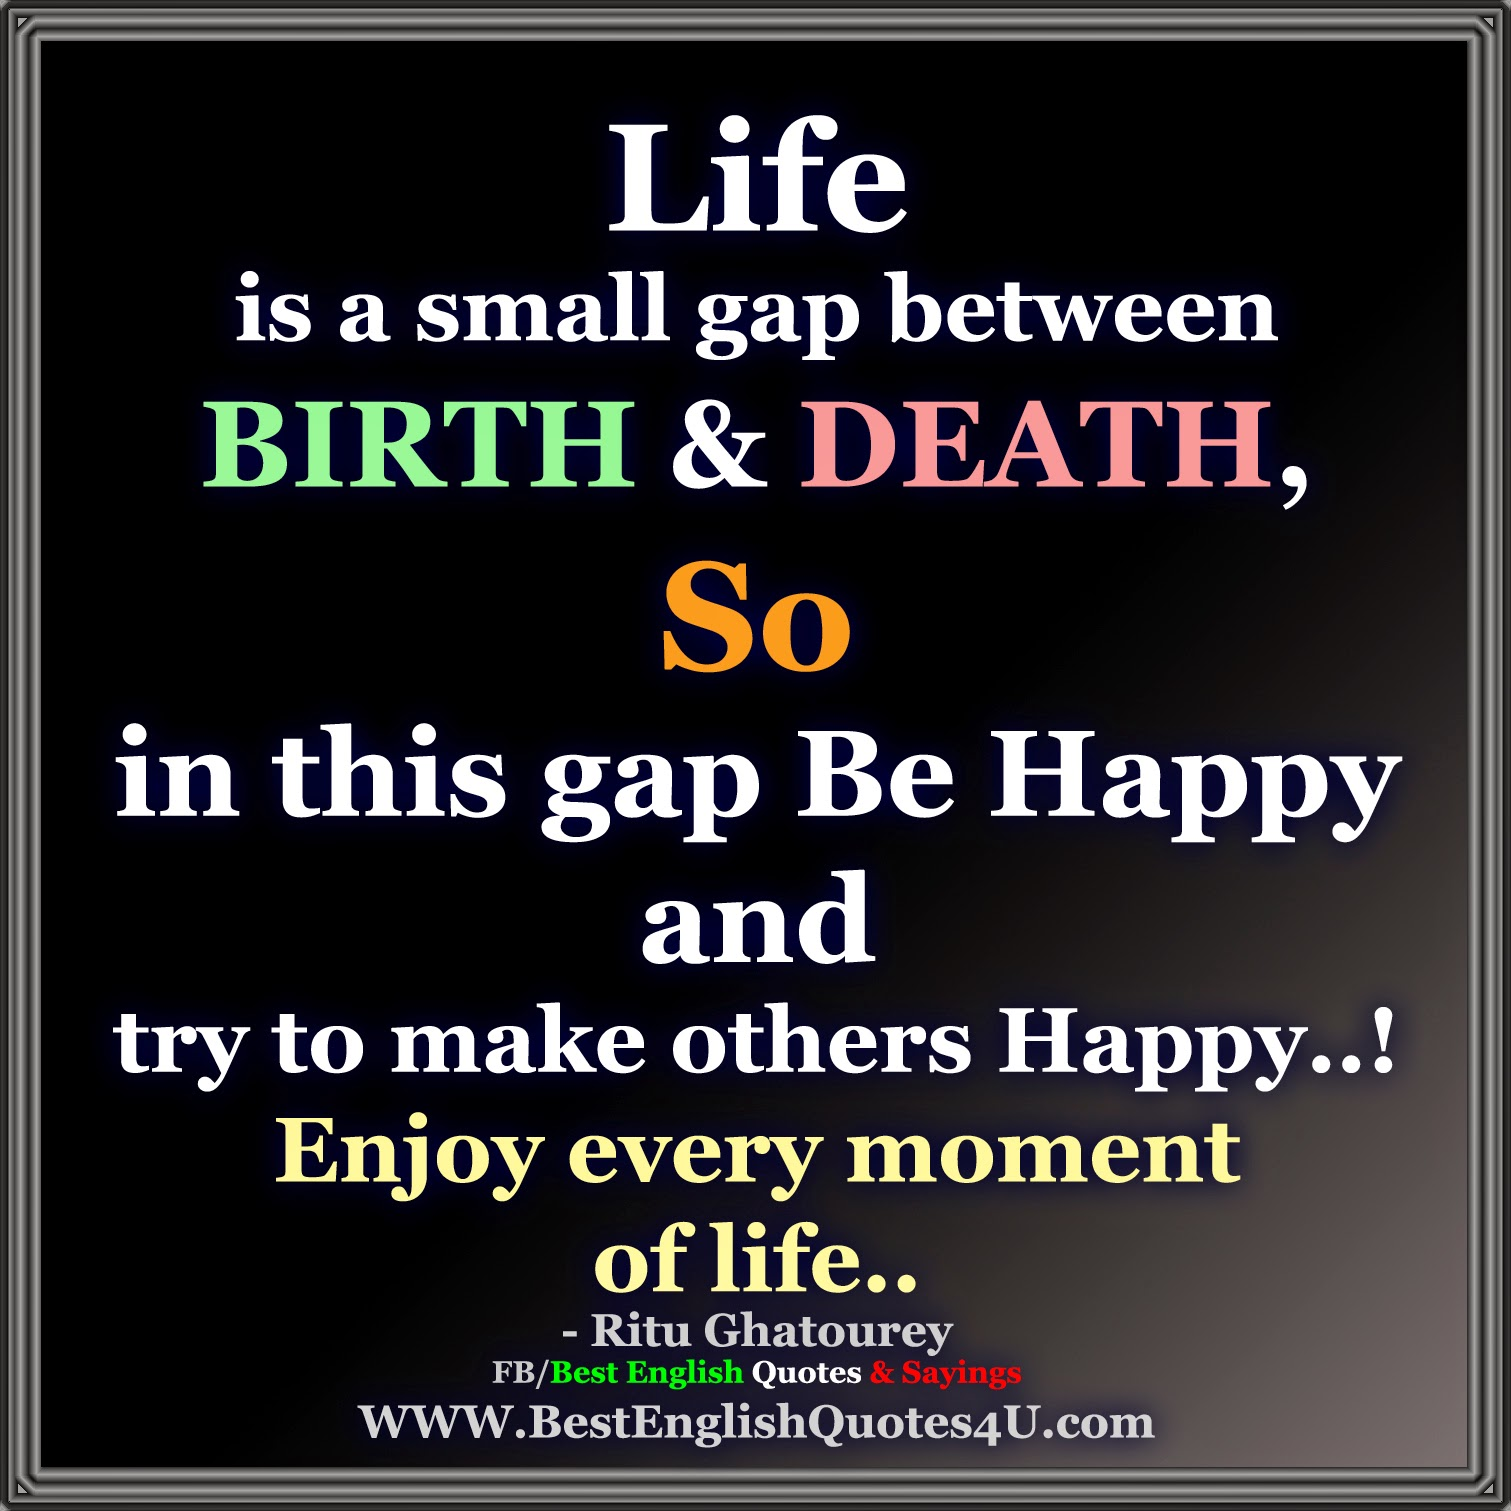 Life And Death Quotes Life Is A Small Gap Between Birth & Death Best'english'quotes